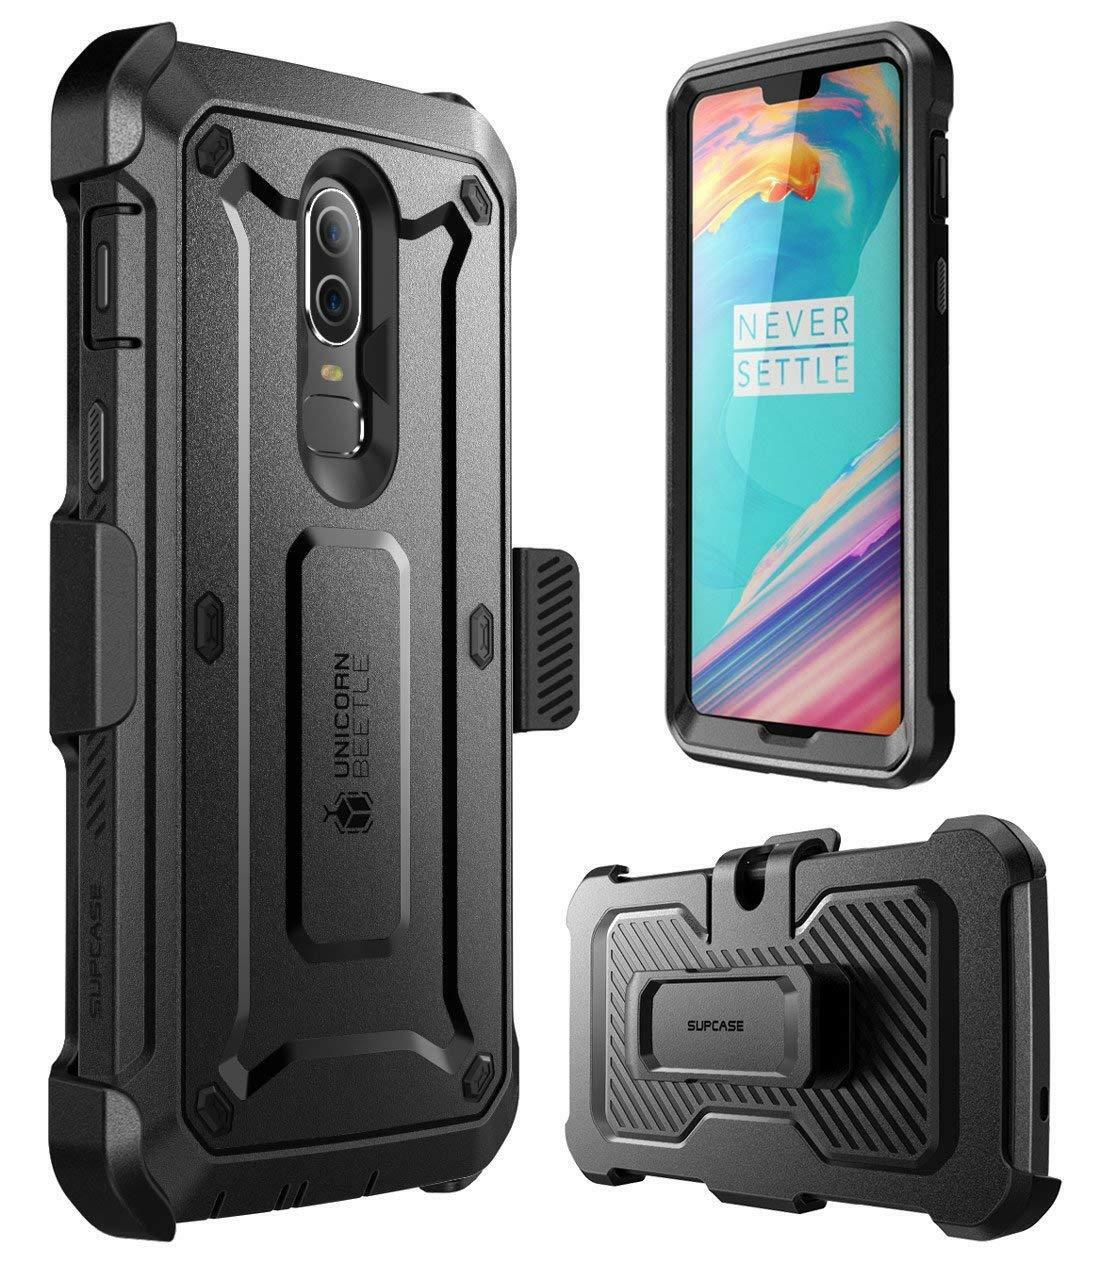 reputable site 54a79 cba60 Details about OnePlus 6 Case,SUPCASE Rugged Shockproof Case Cover w/Screen  Protector Belt Clip